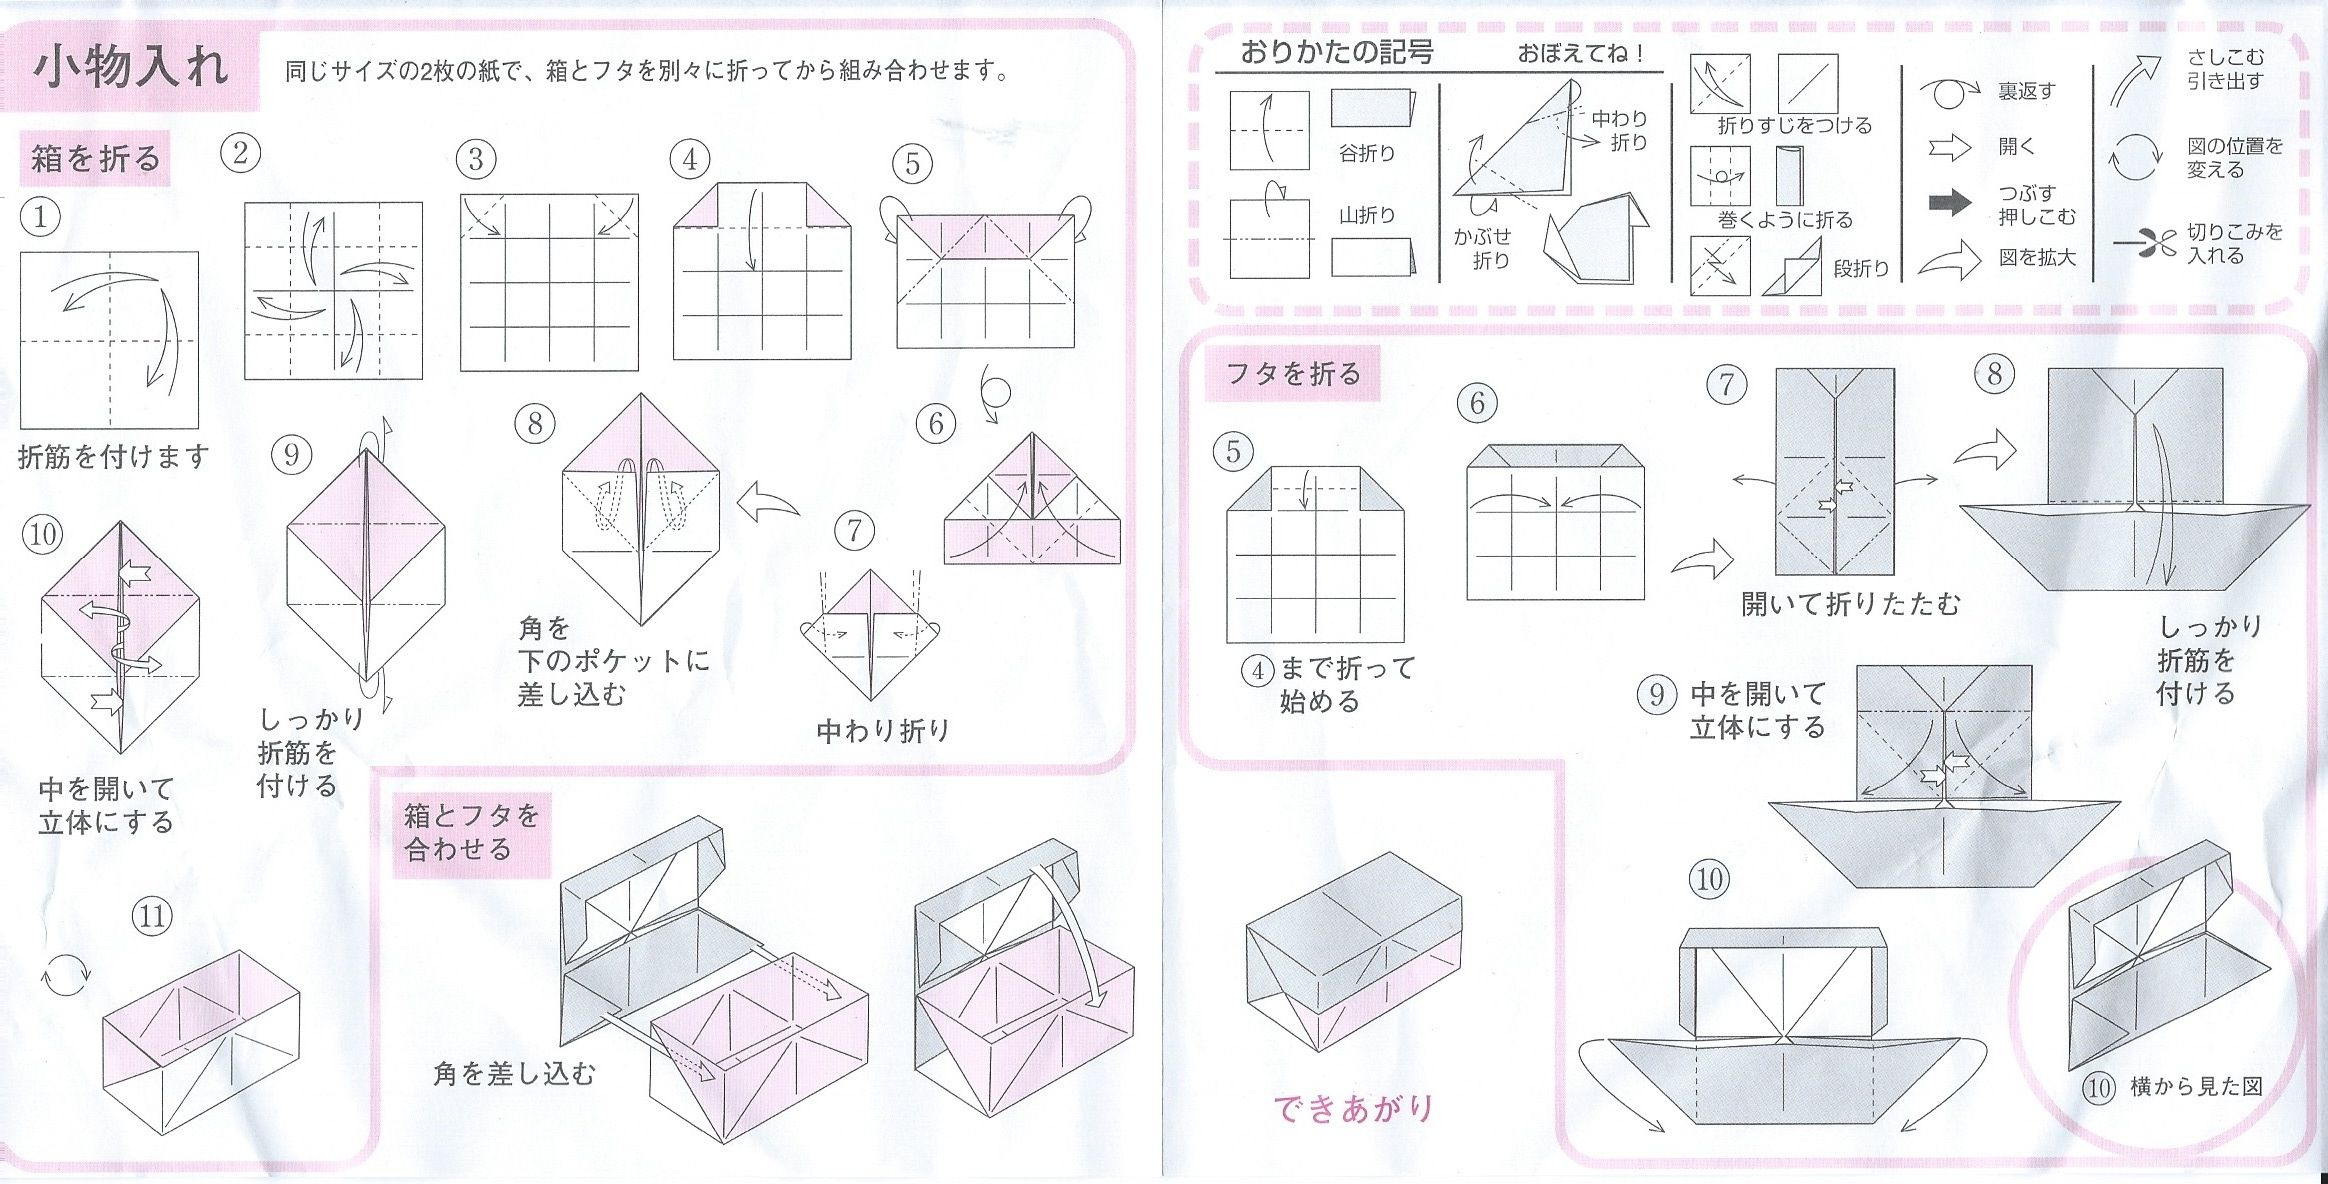 Phenomenal Origami Diagrams For Two Piece Box With Hinged Lid Origami Wiring Cloud Vieworaidewilluminateatxorg